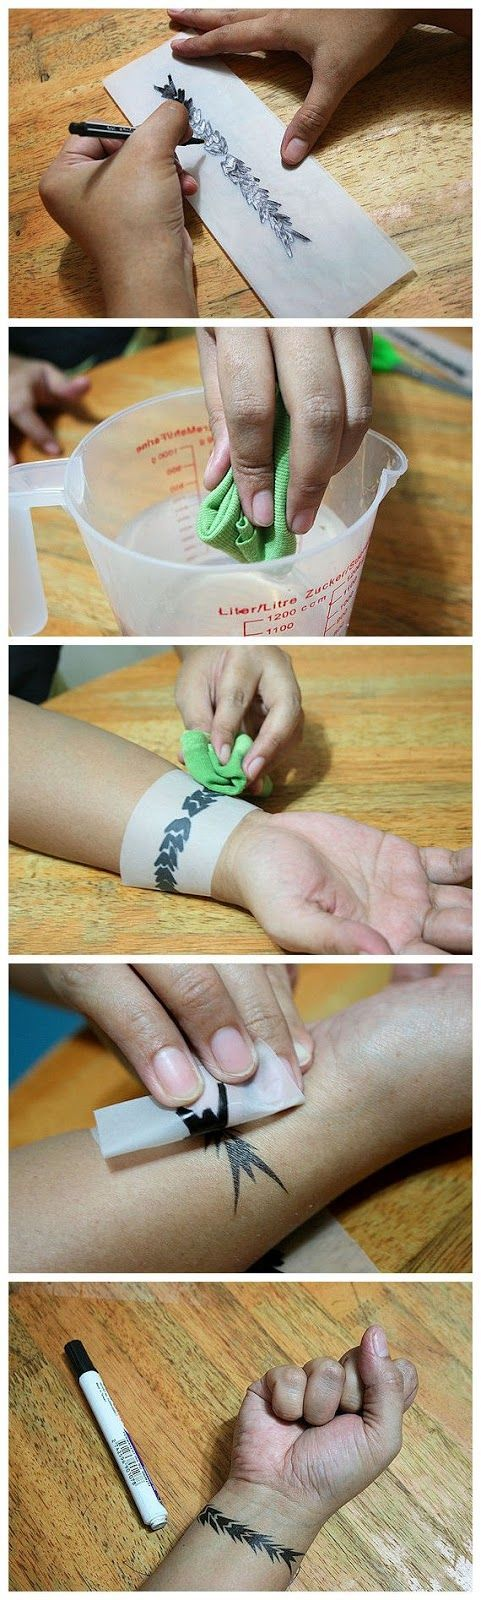 DIY Temporary Body Tattoo. easy peezy. just use tracing paper, a gel pen, an old cloth and water. Almost like the tattoos you buy from Walmart except you design your own.... good way to test out a tattoo you want to get done before it's permanent!